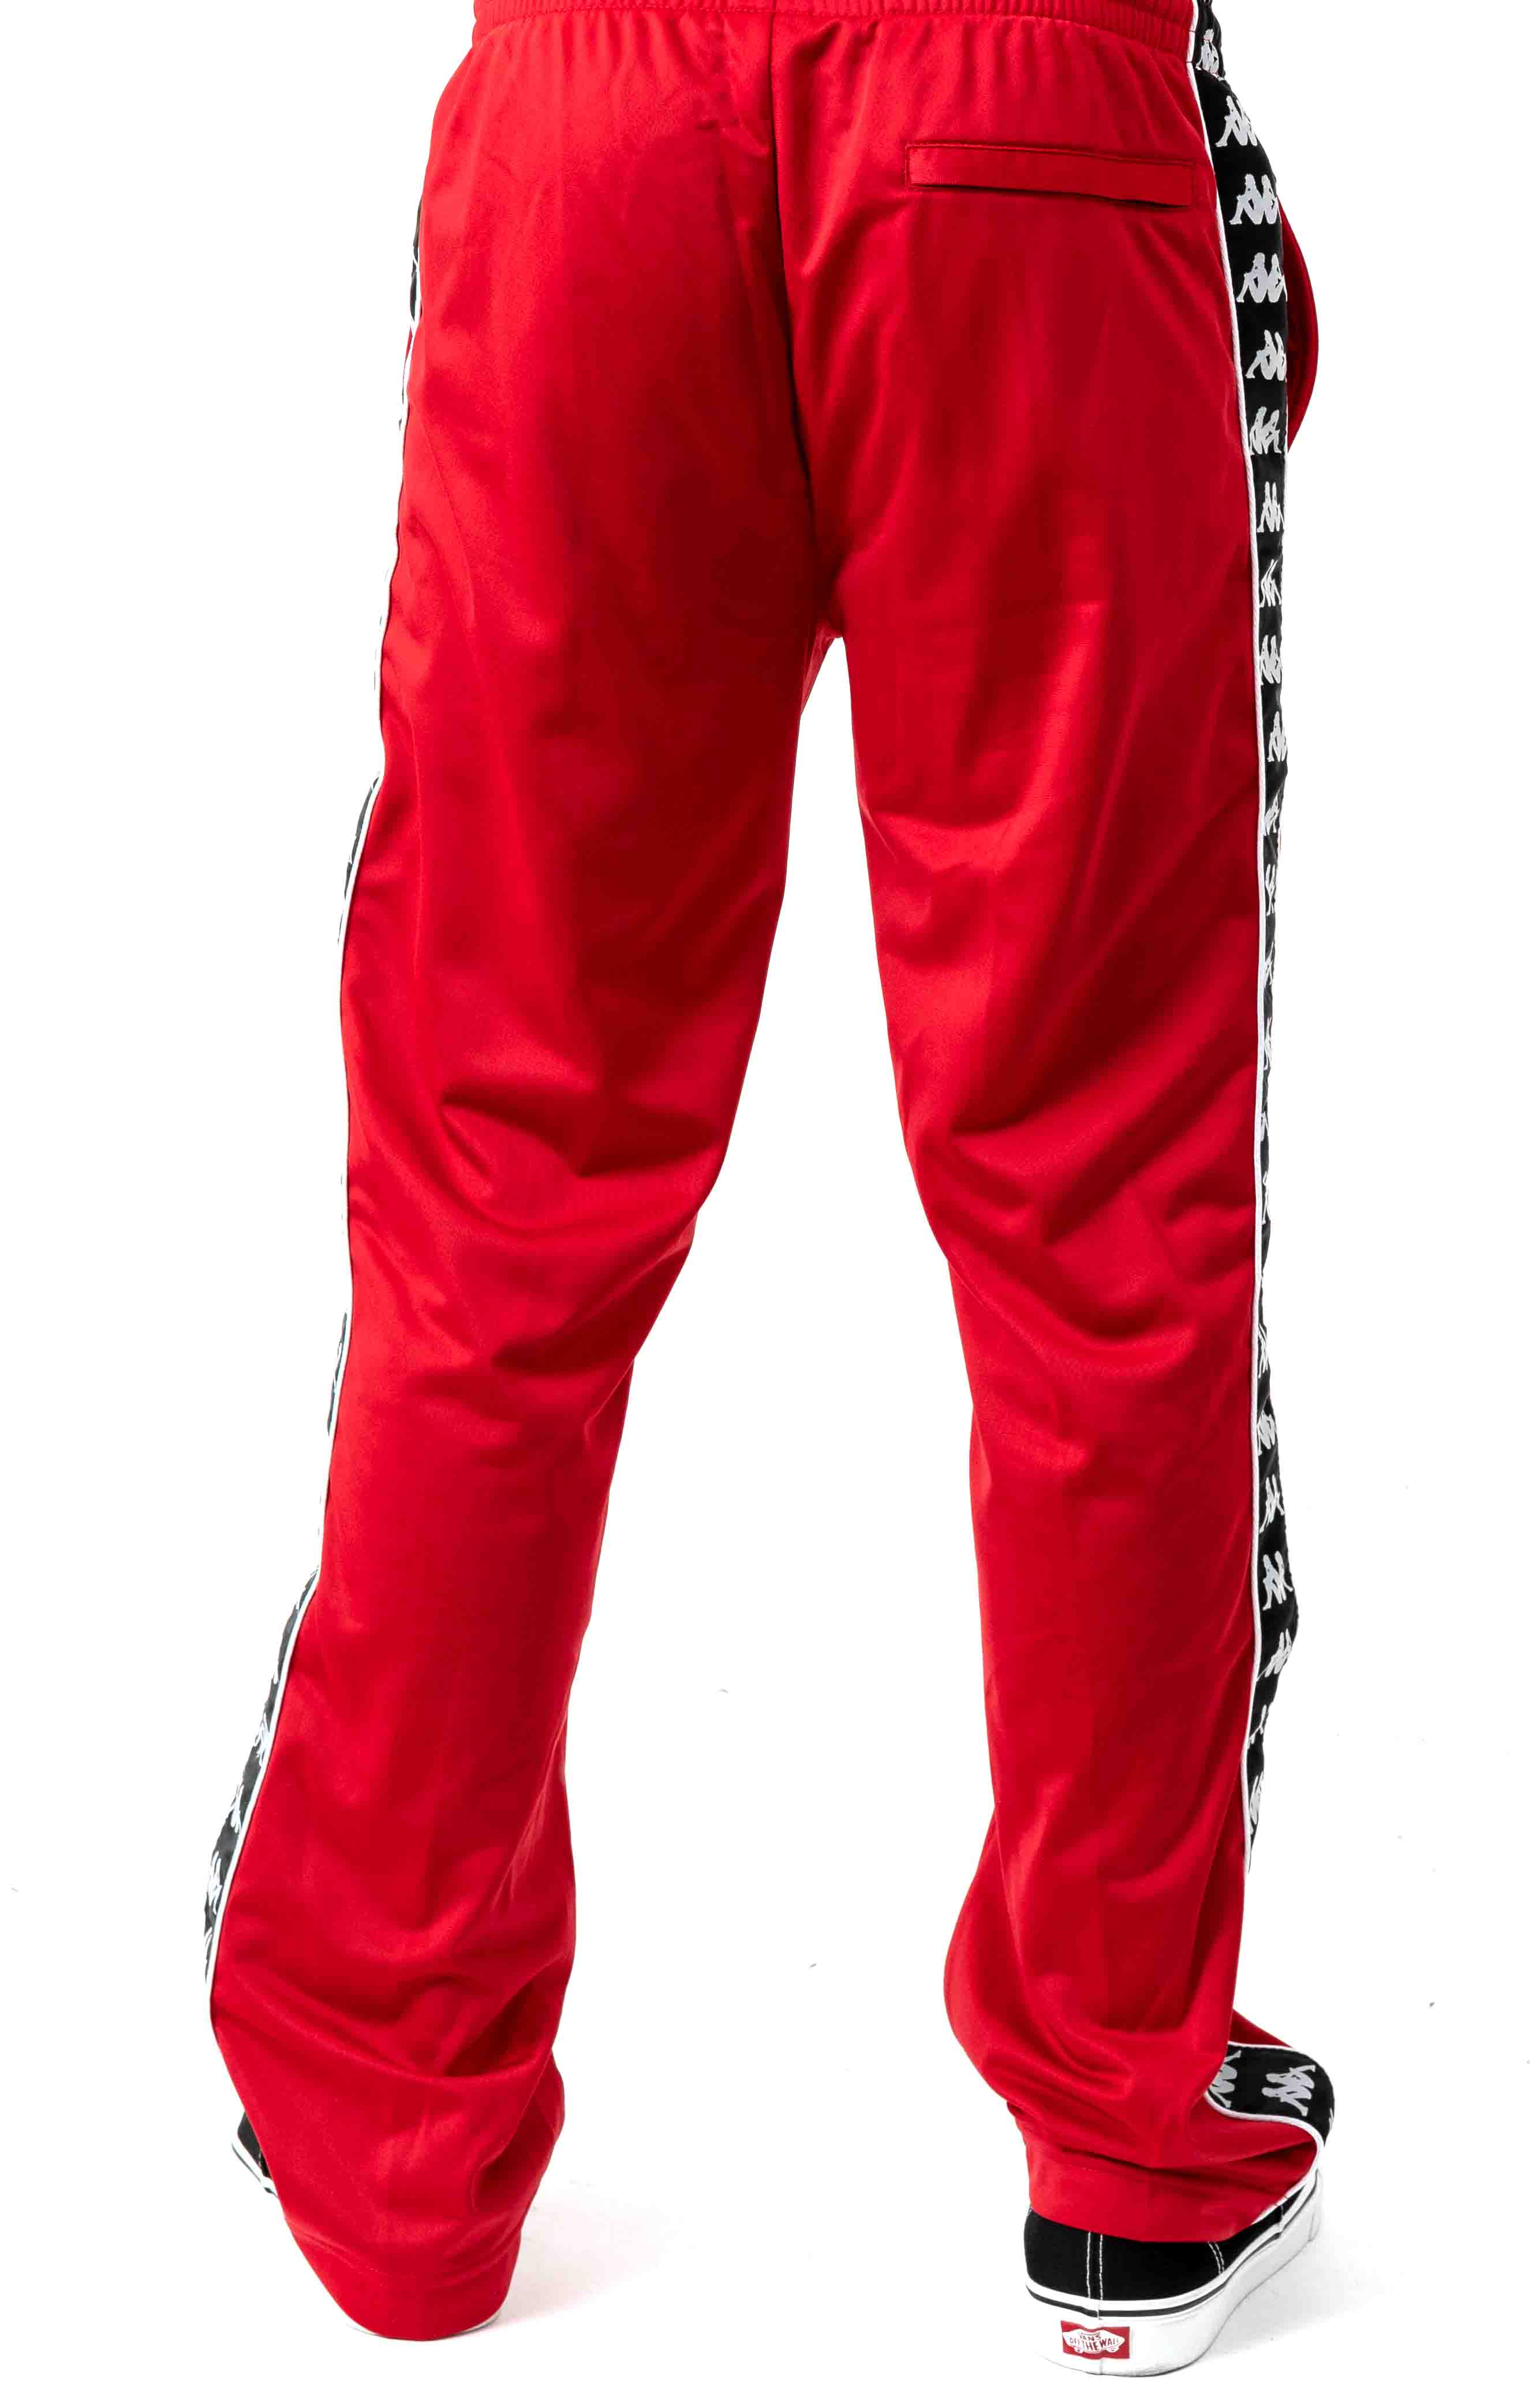 222 Banda Astoriazz Trackpant - Red/Black 3